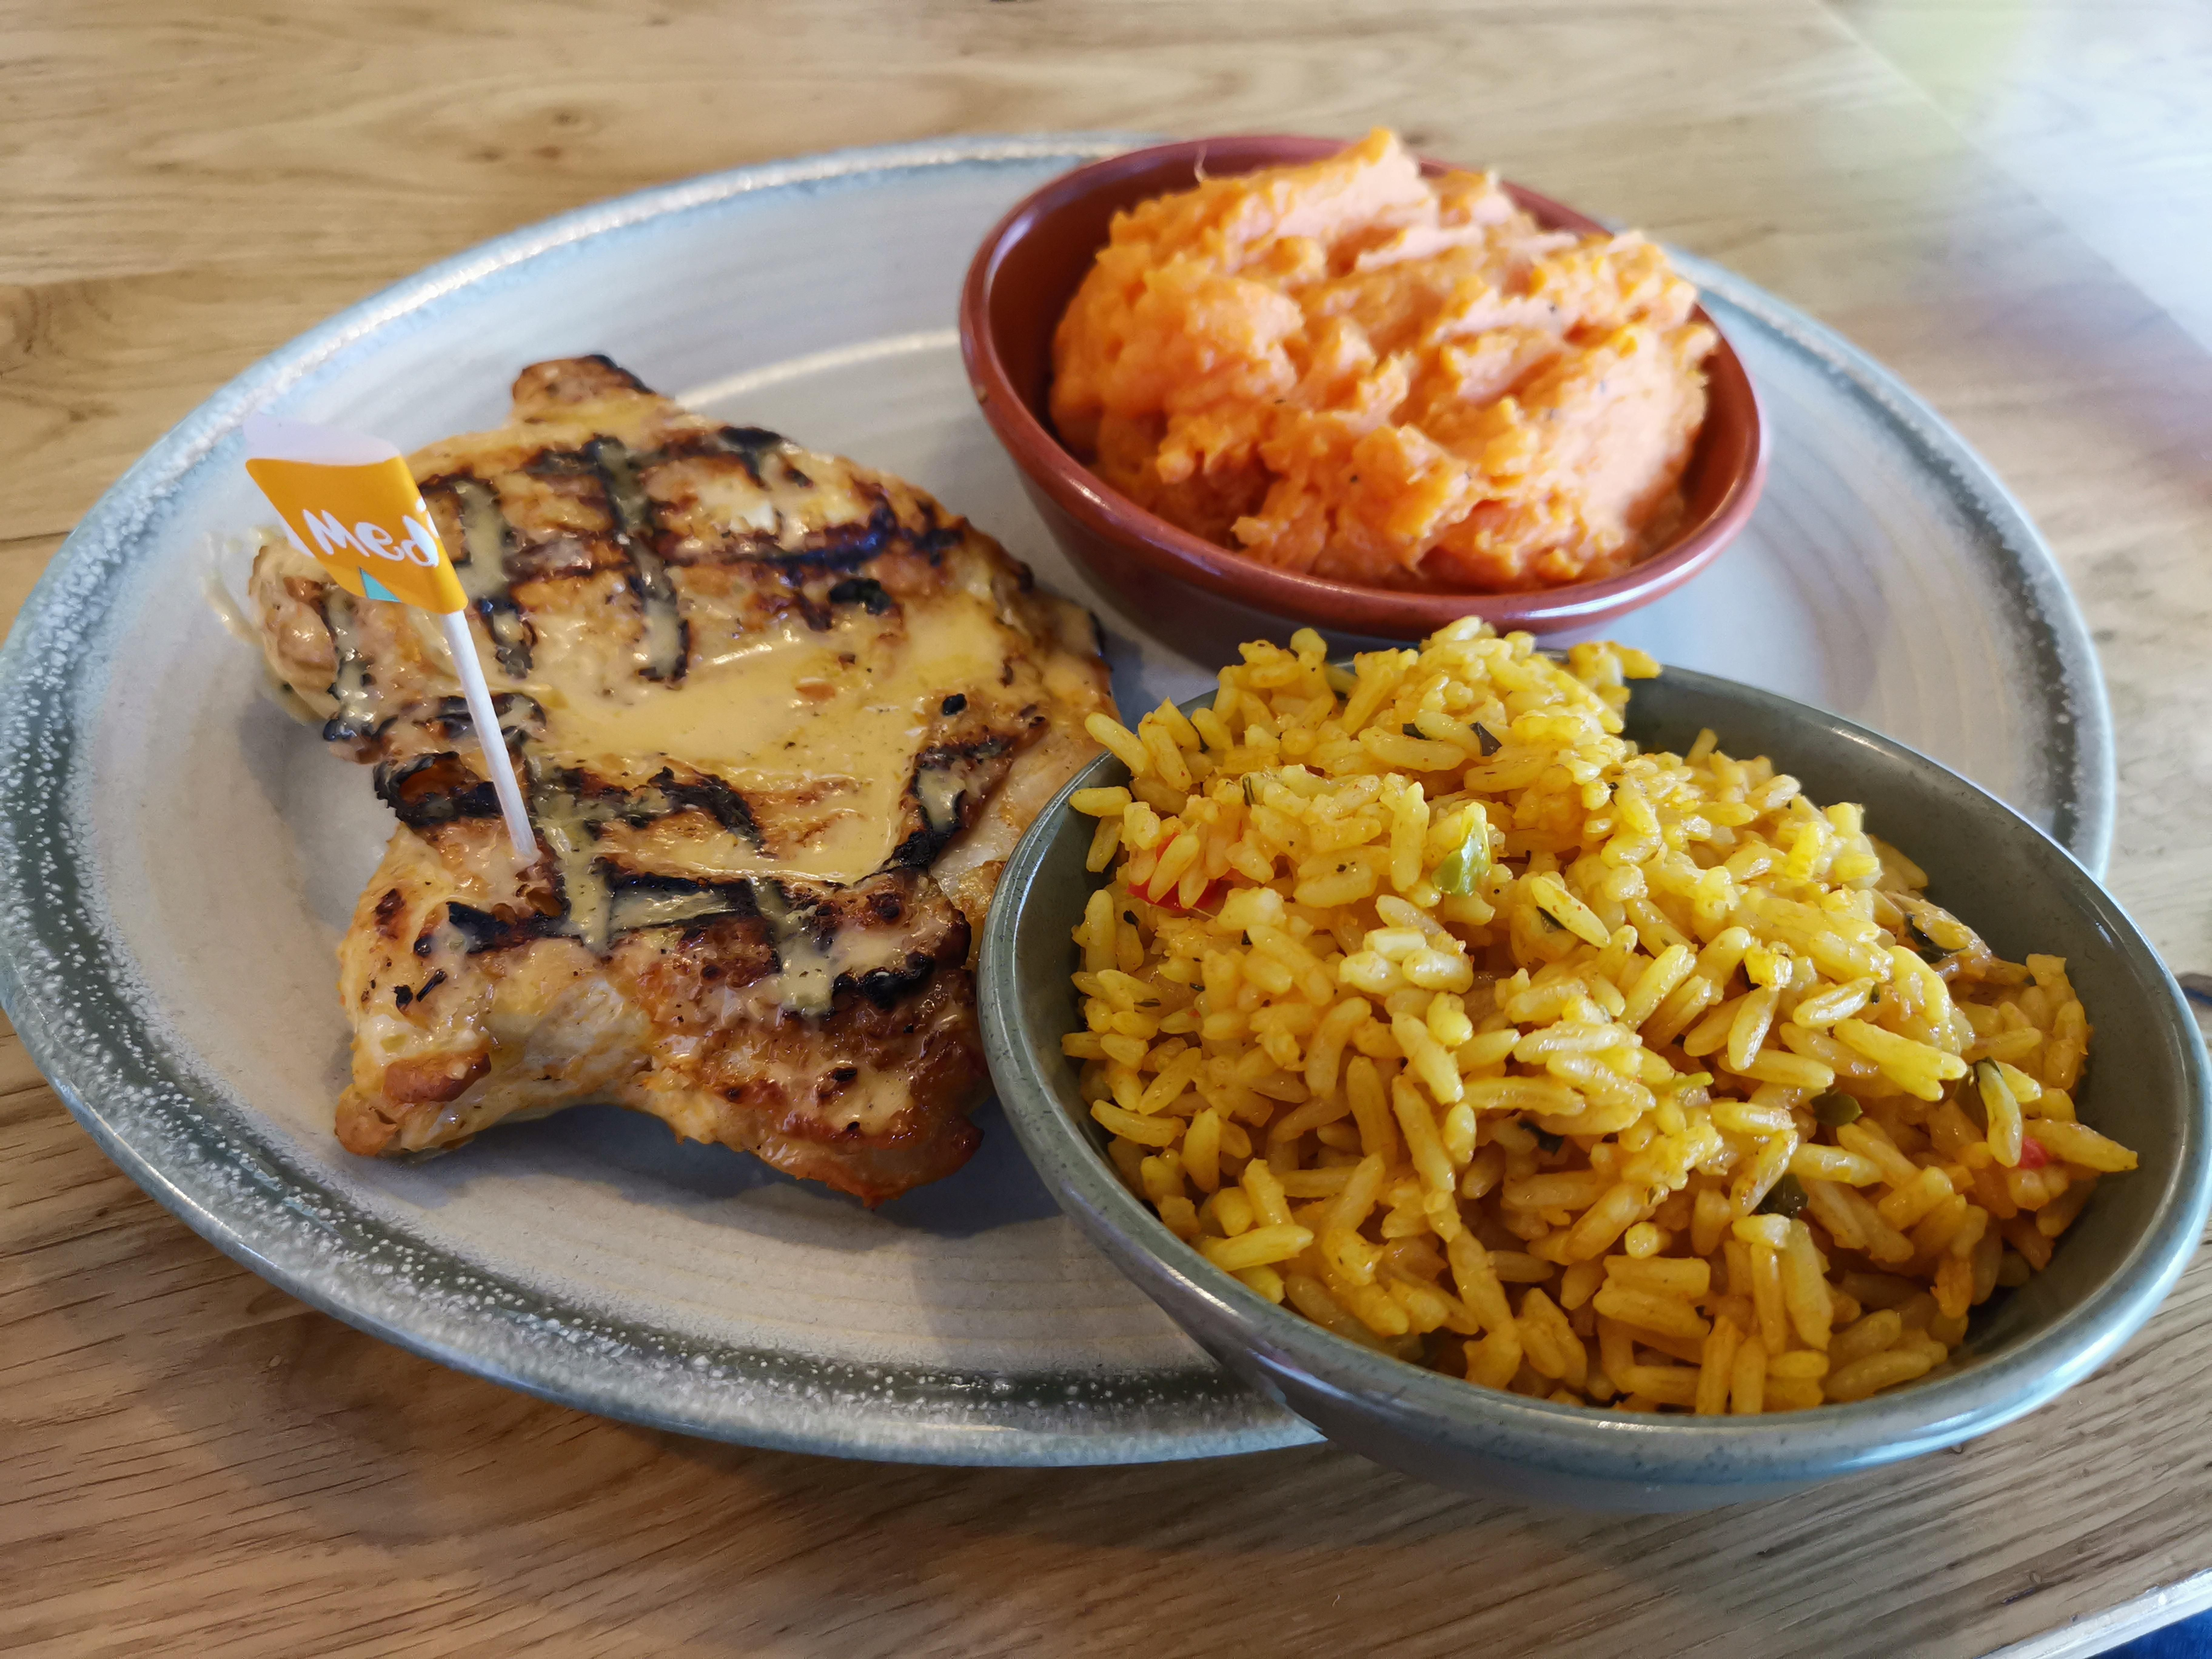 I Ate This Butterfly Chicken With Spicy Rice And Sweet Potato Mash Nandos Uk Spicy Rice Mashed Sweet Potatoes Spicy